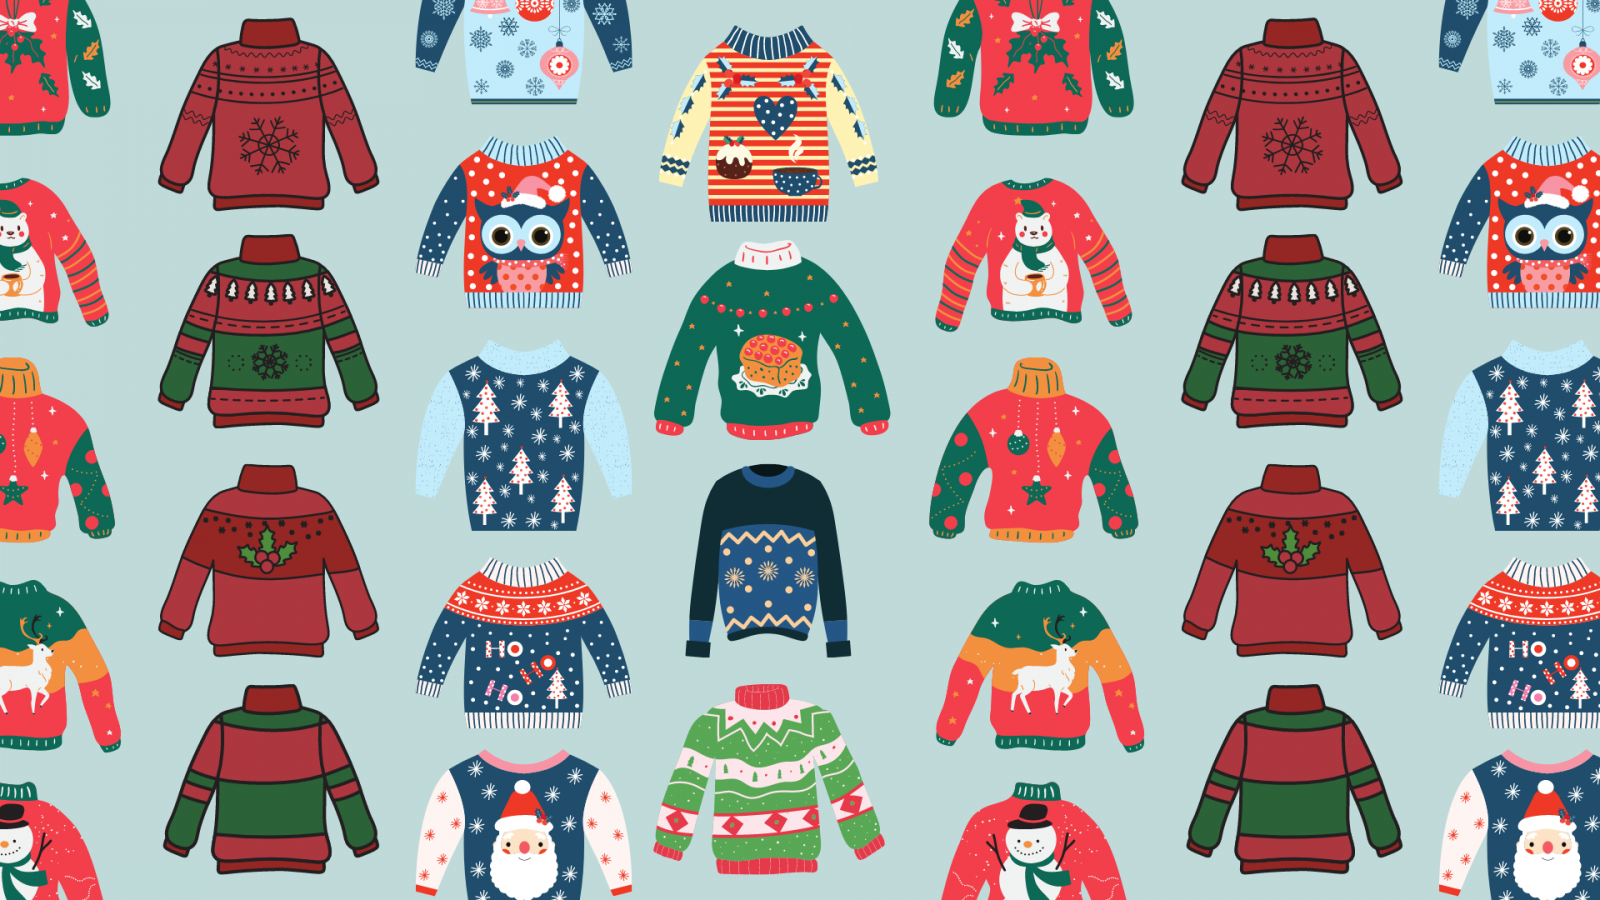 Ugly winter sweaters on a blue background